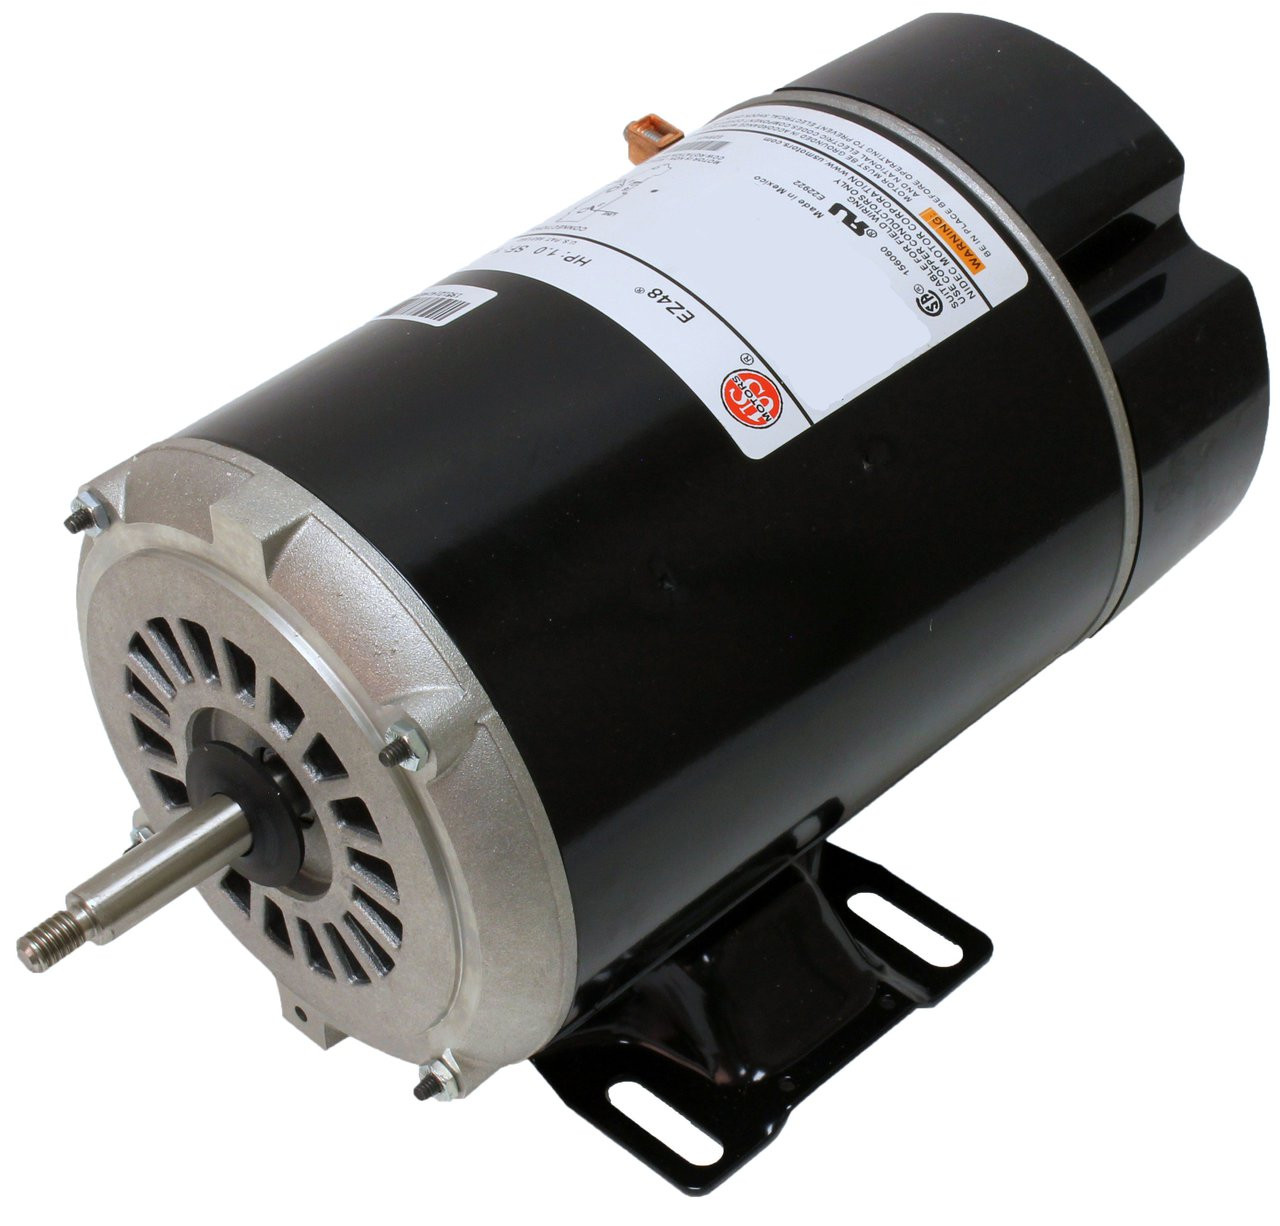 EZBN25__39141.1435584884.1280.1280?c\=2 hayward max flo wiring diagram 115v hayward pool motors 1 5 hp Hayward Pro Max at aneh.co